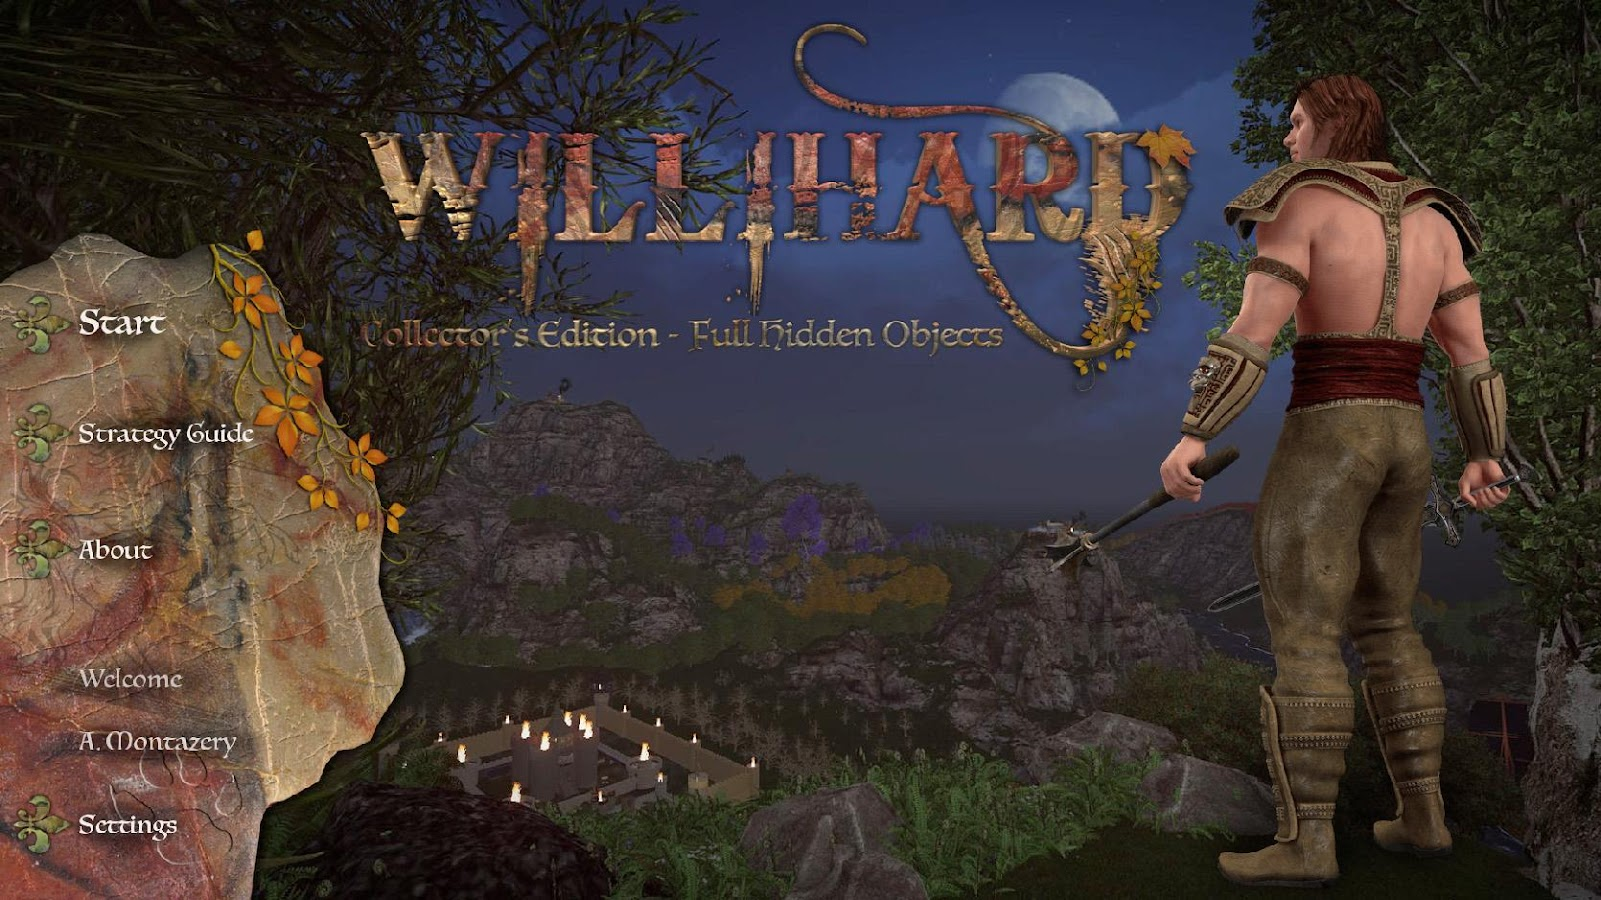 WILLIHARD (Hidden Objects) Screenshot